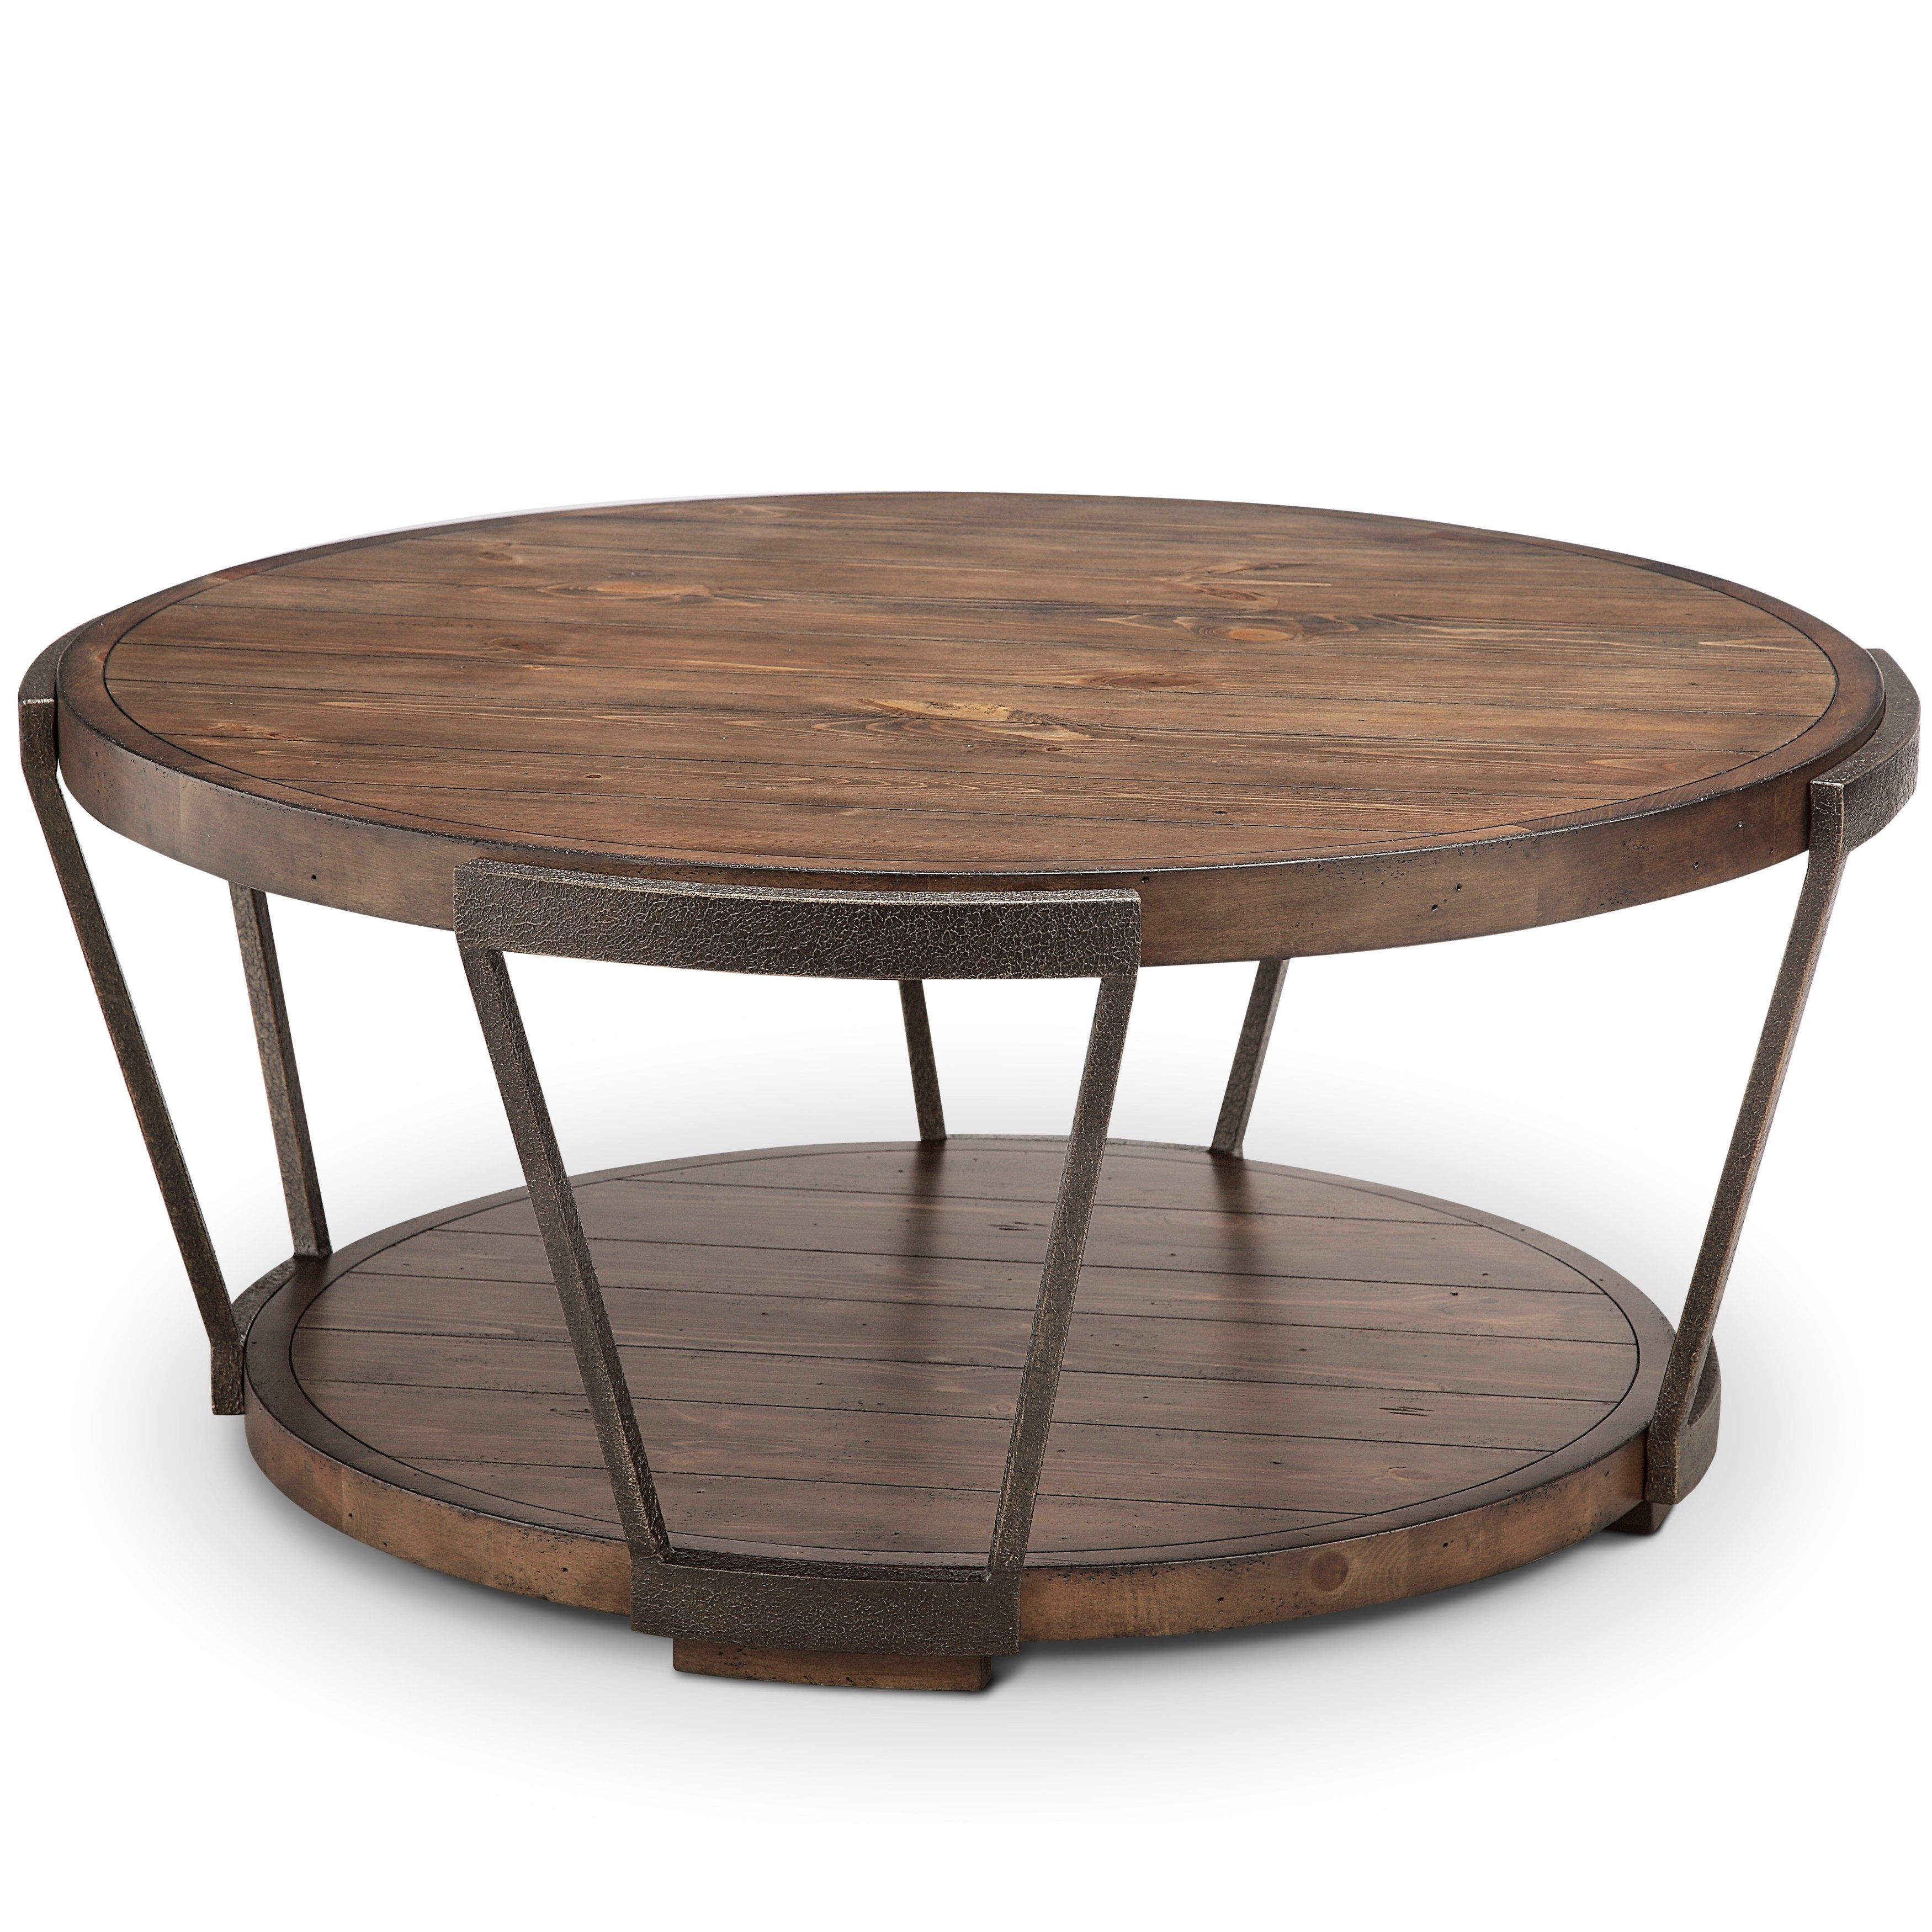 Overstock Com Online Shopping Bedding Furniture Electronics Jewelry Clothing More Coffee Table With Casters Round Wood Coffee Table Coffee Table Wood [ 3500 x 3500 Pixel ]